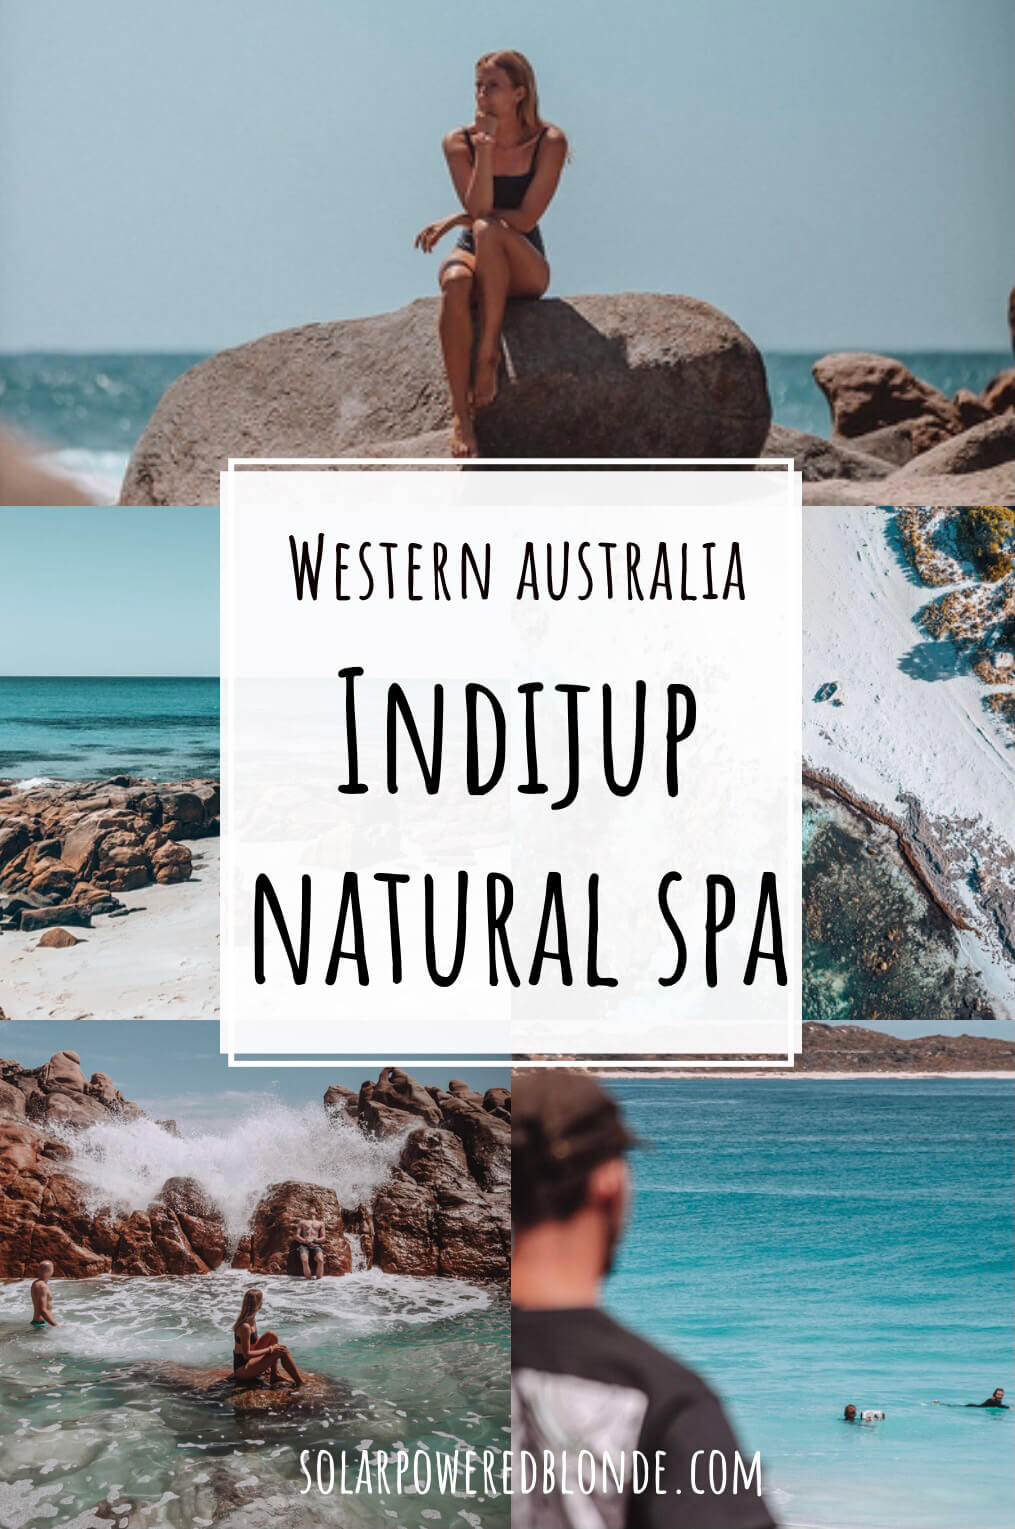 Indijup Natural Spa photos of Western Australia with text overlay